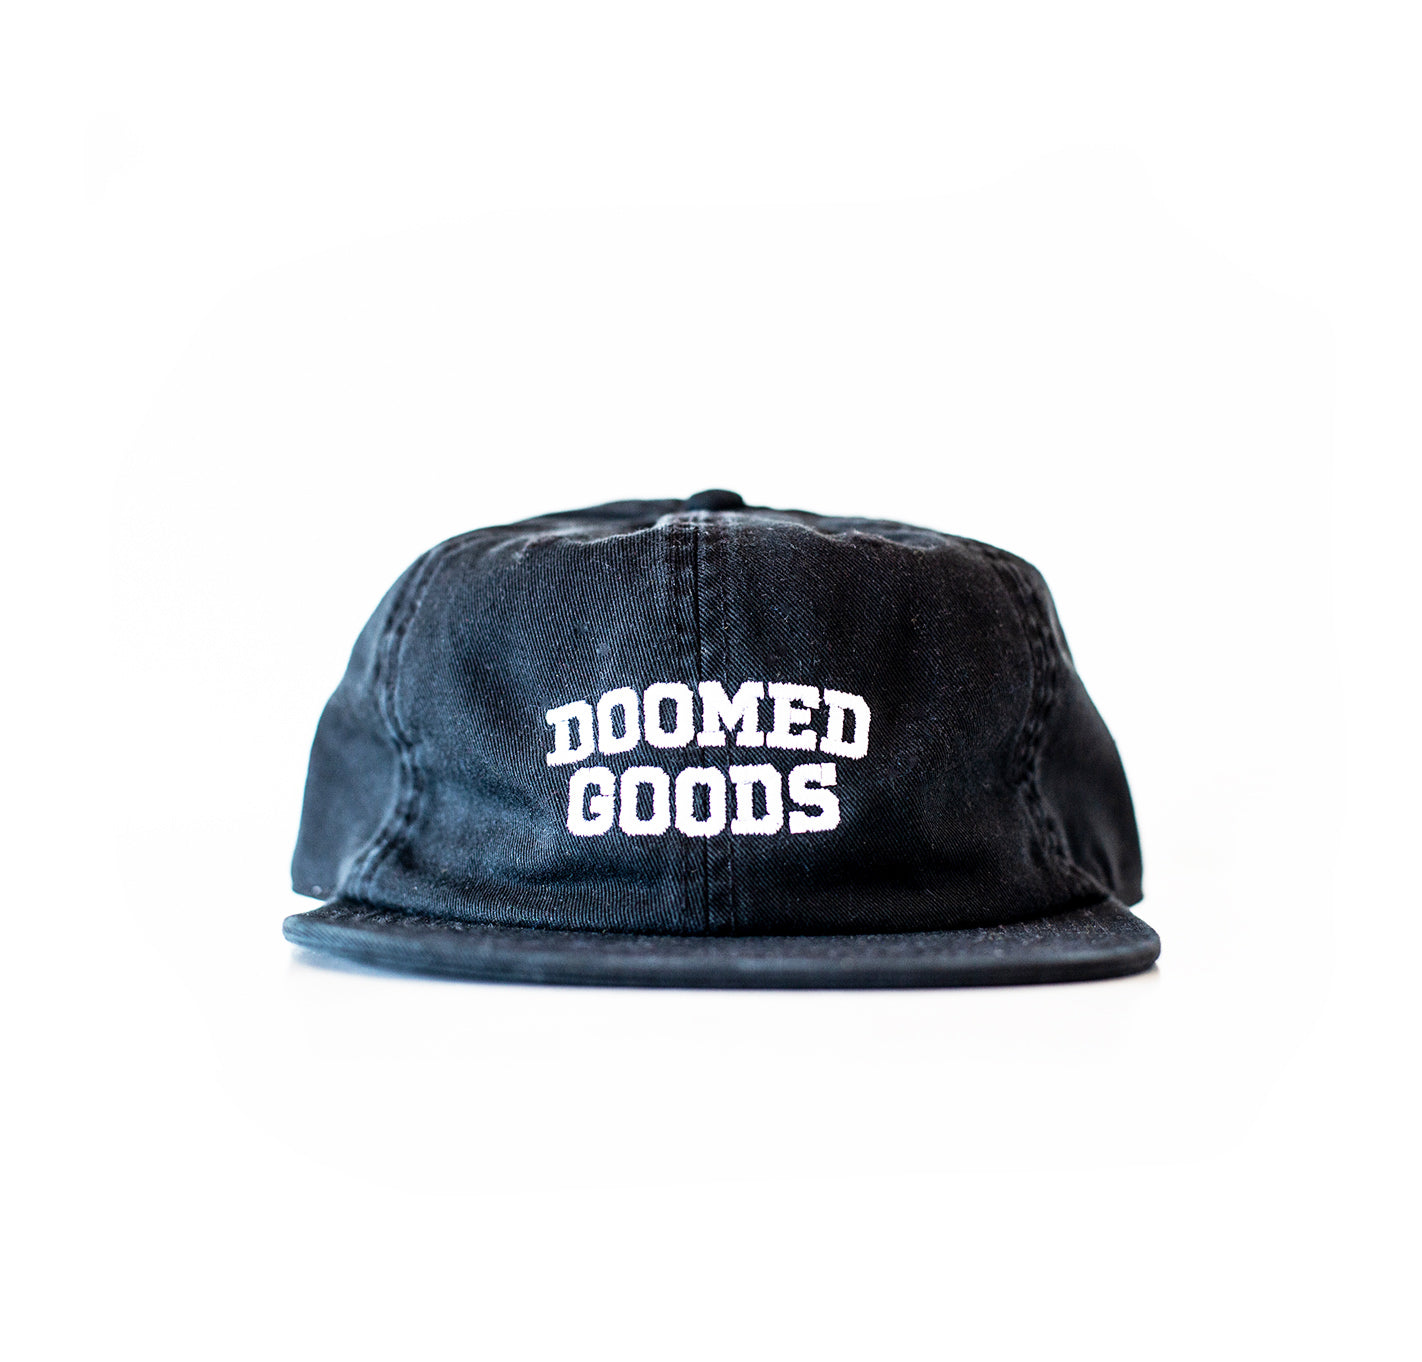 Doomed Goods 6 Panel